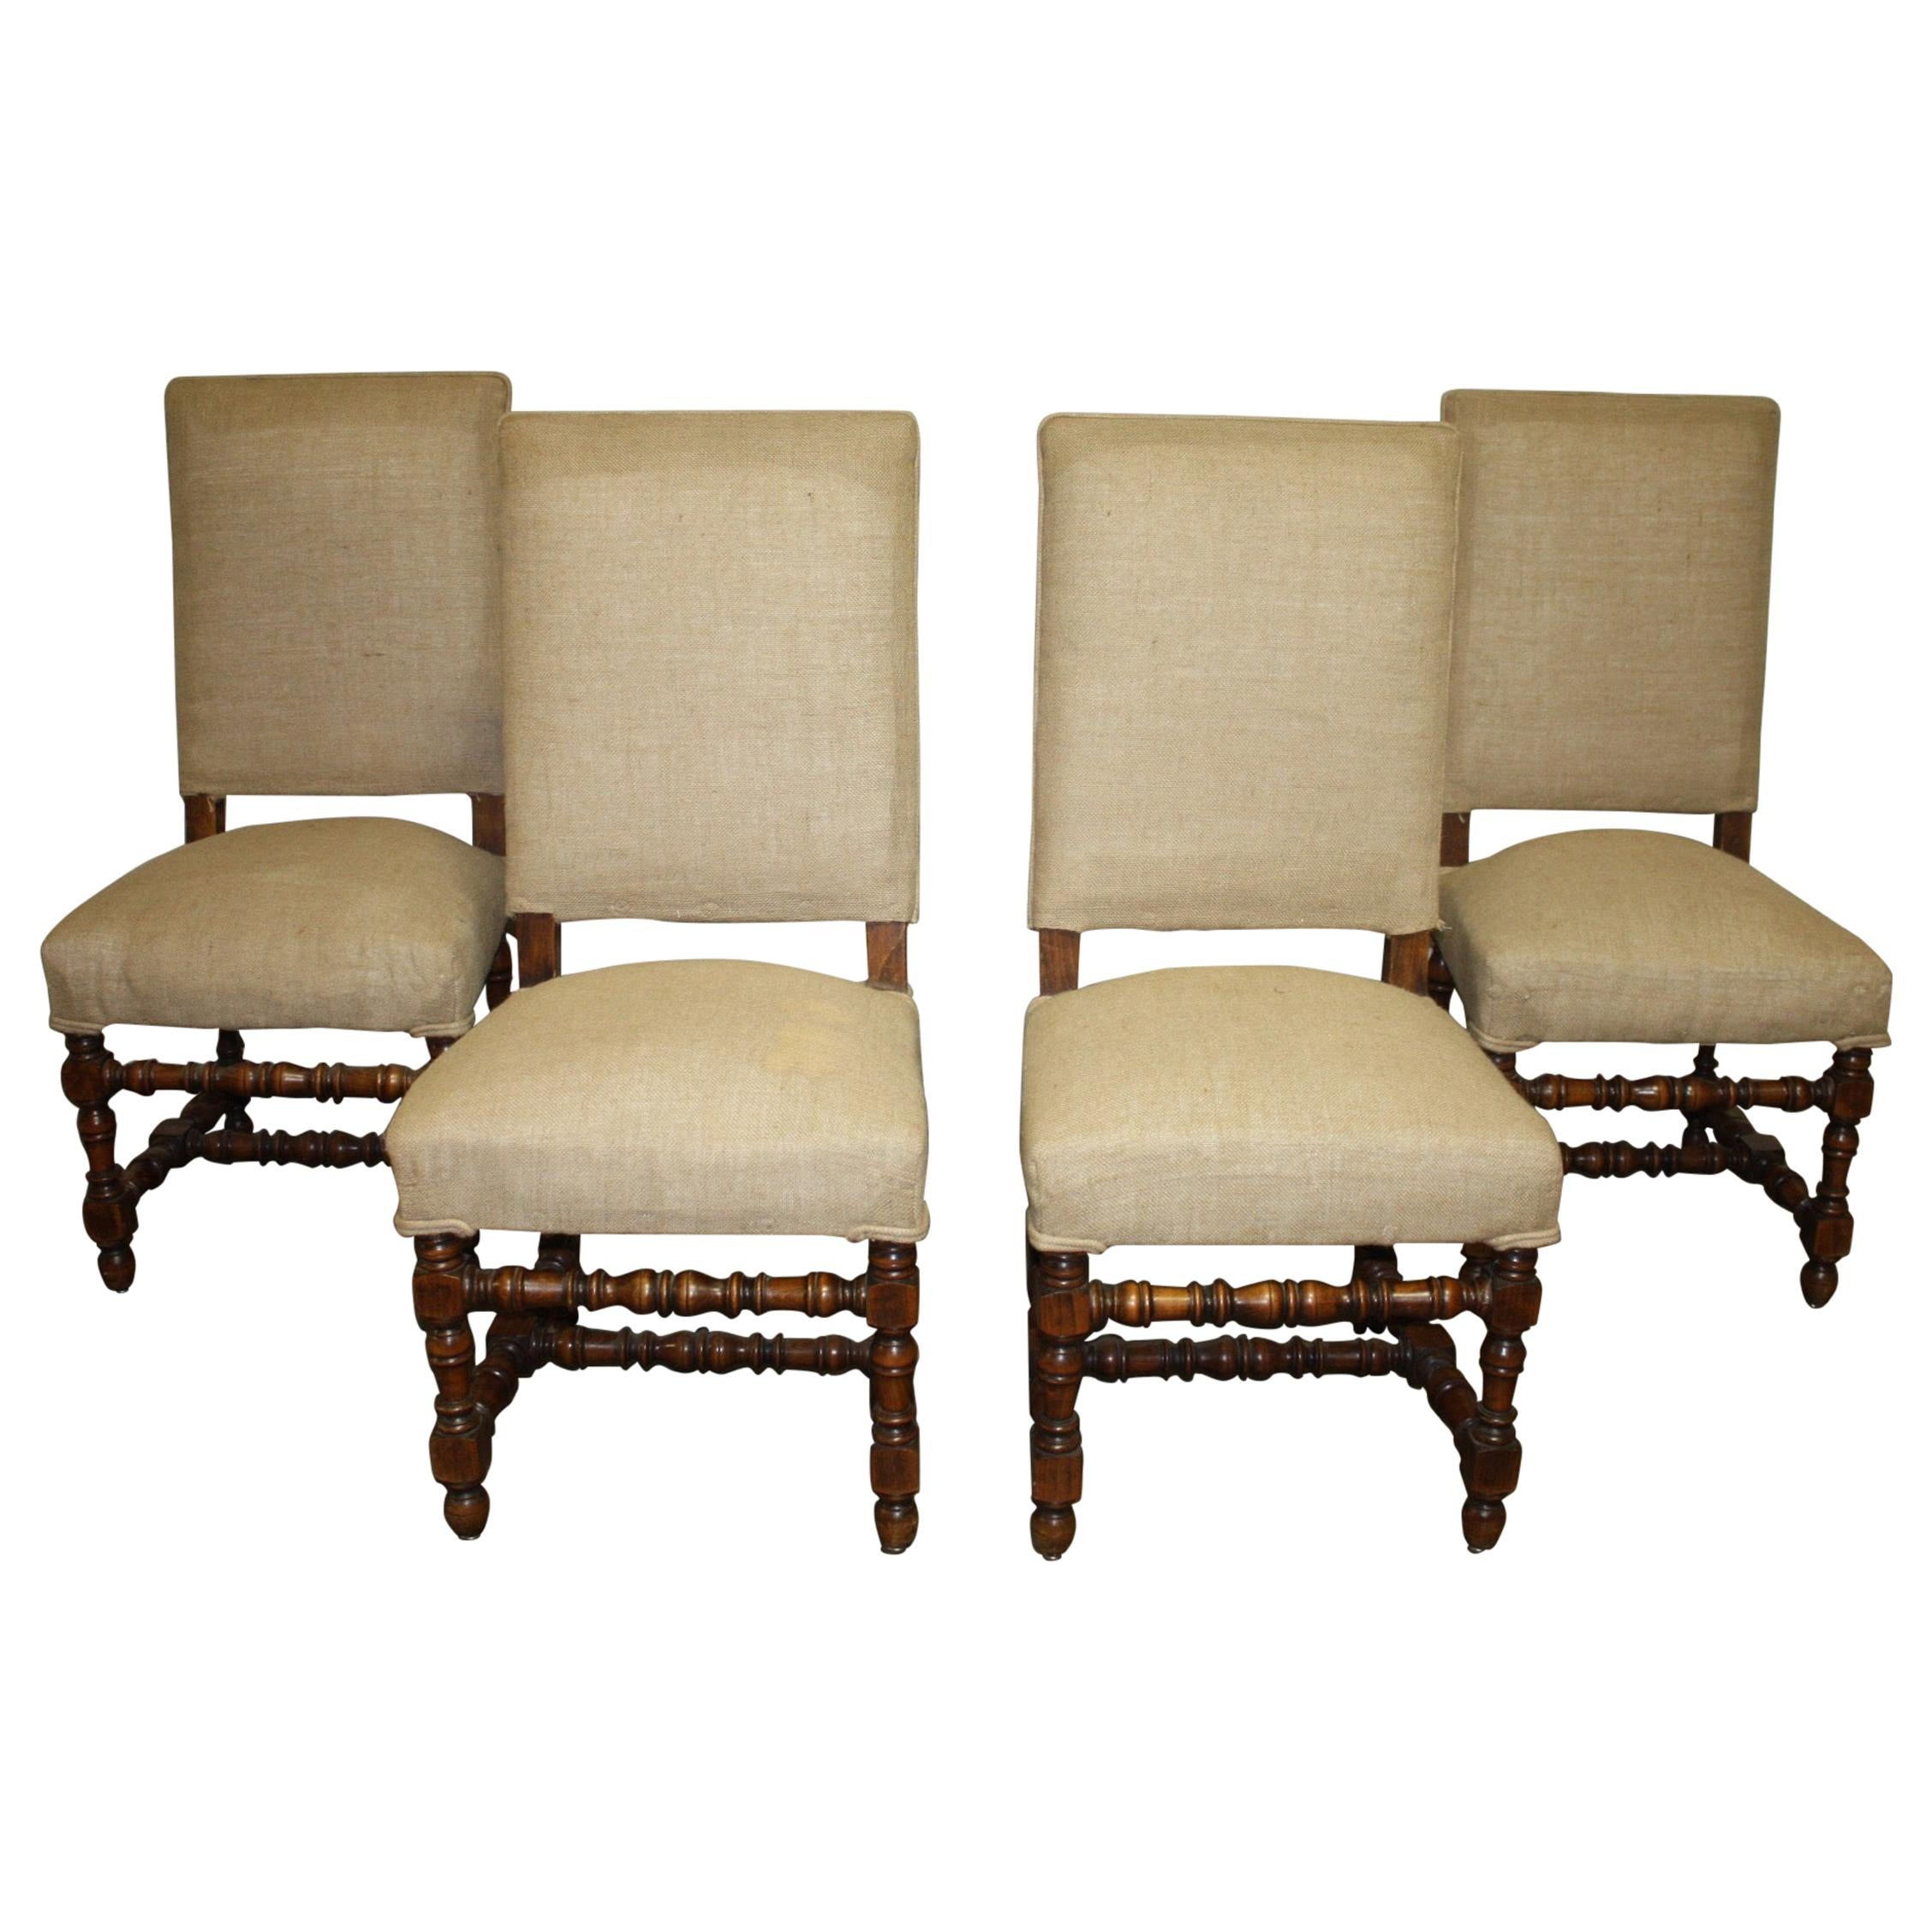 French 19th Century Chairs